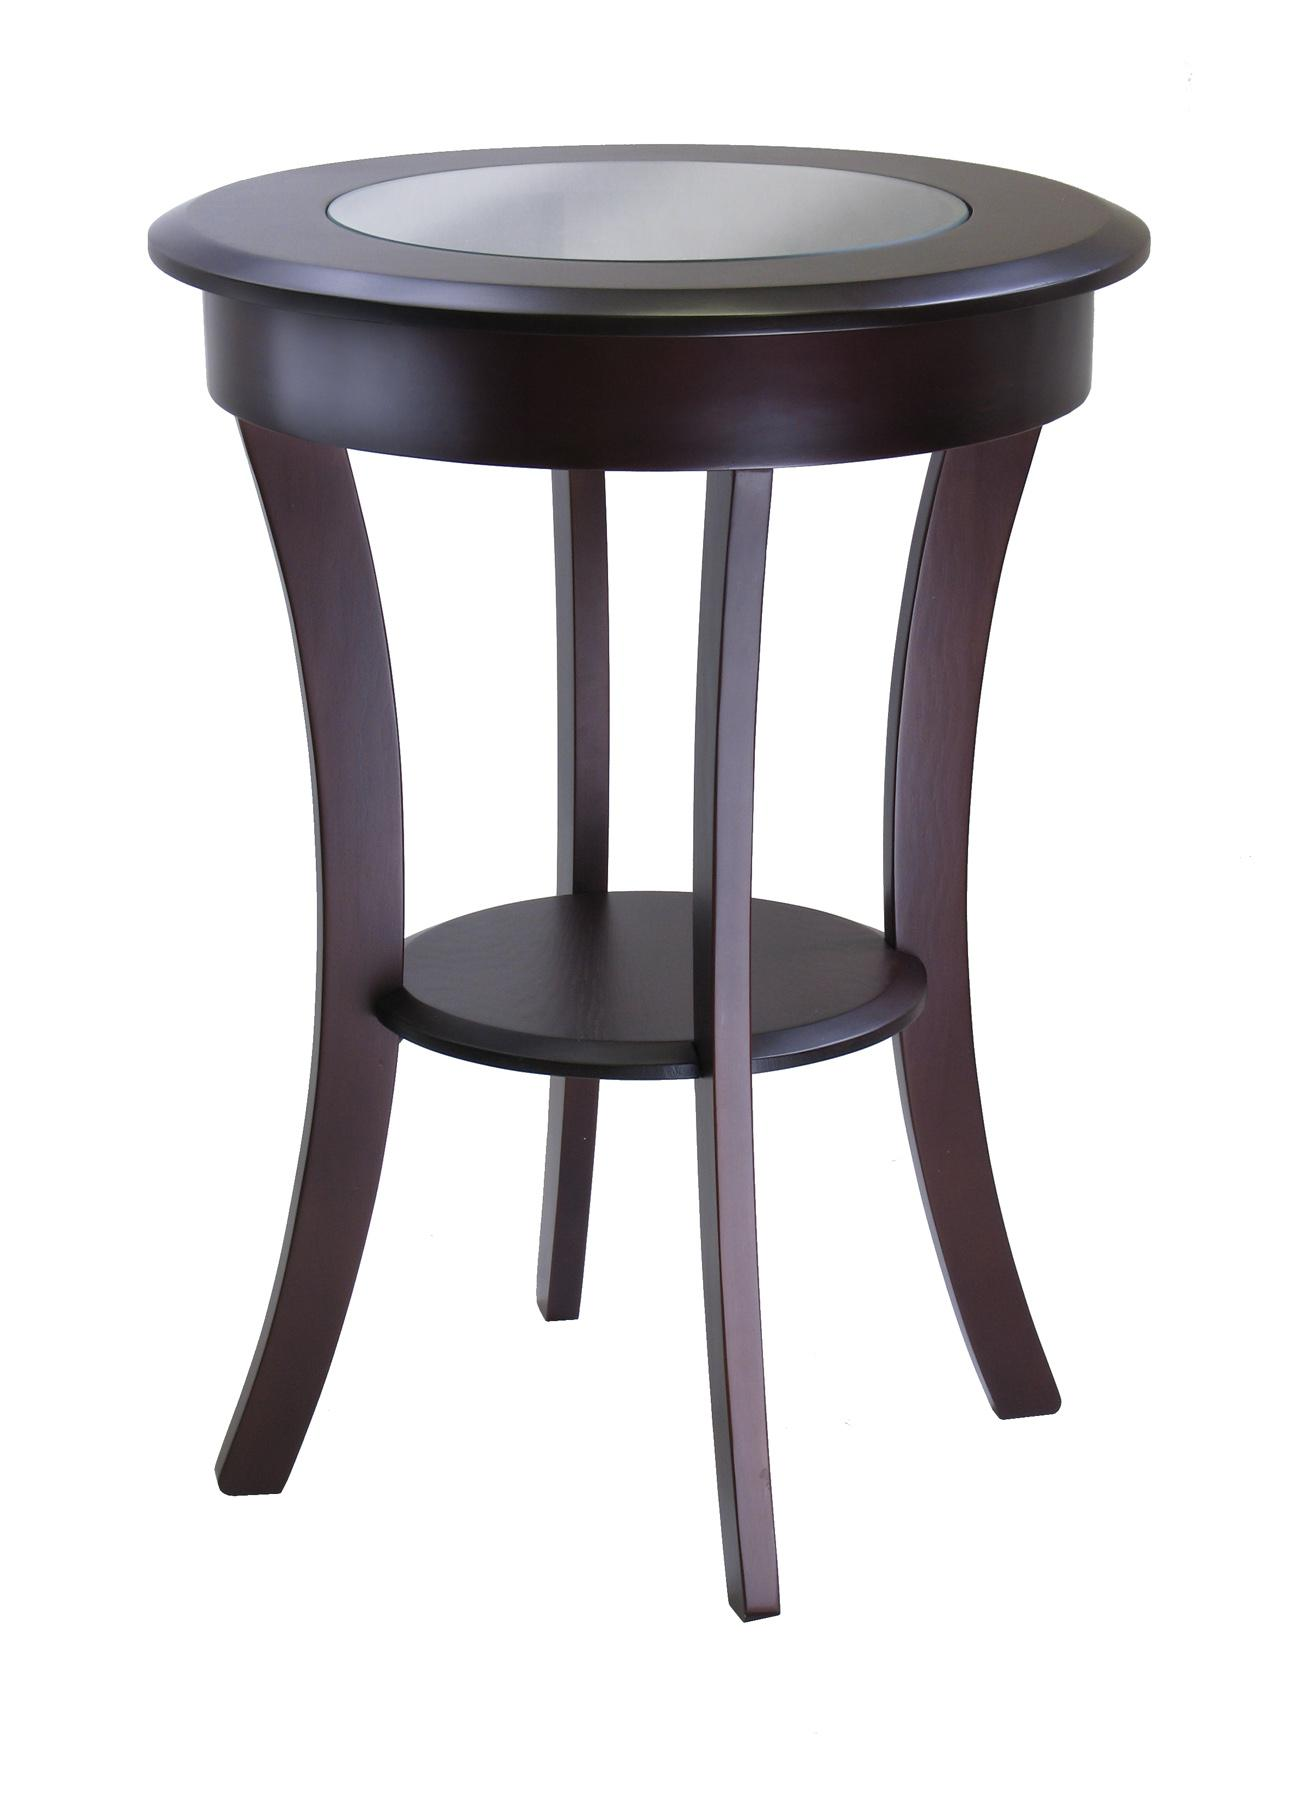 winsome wood cassie round accent table with glass ojcommerce gray uttermost laton mirrored antique wheels for coffee dining pedestal base only knotty pine bar stools cocktail and